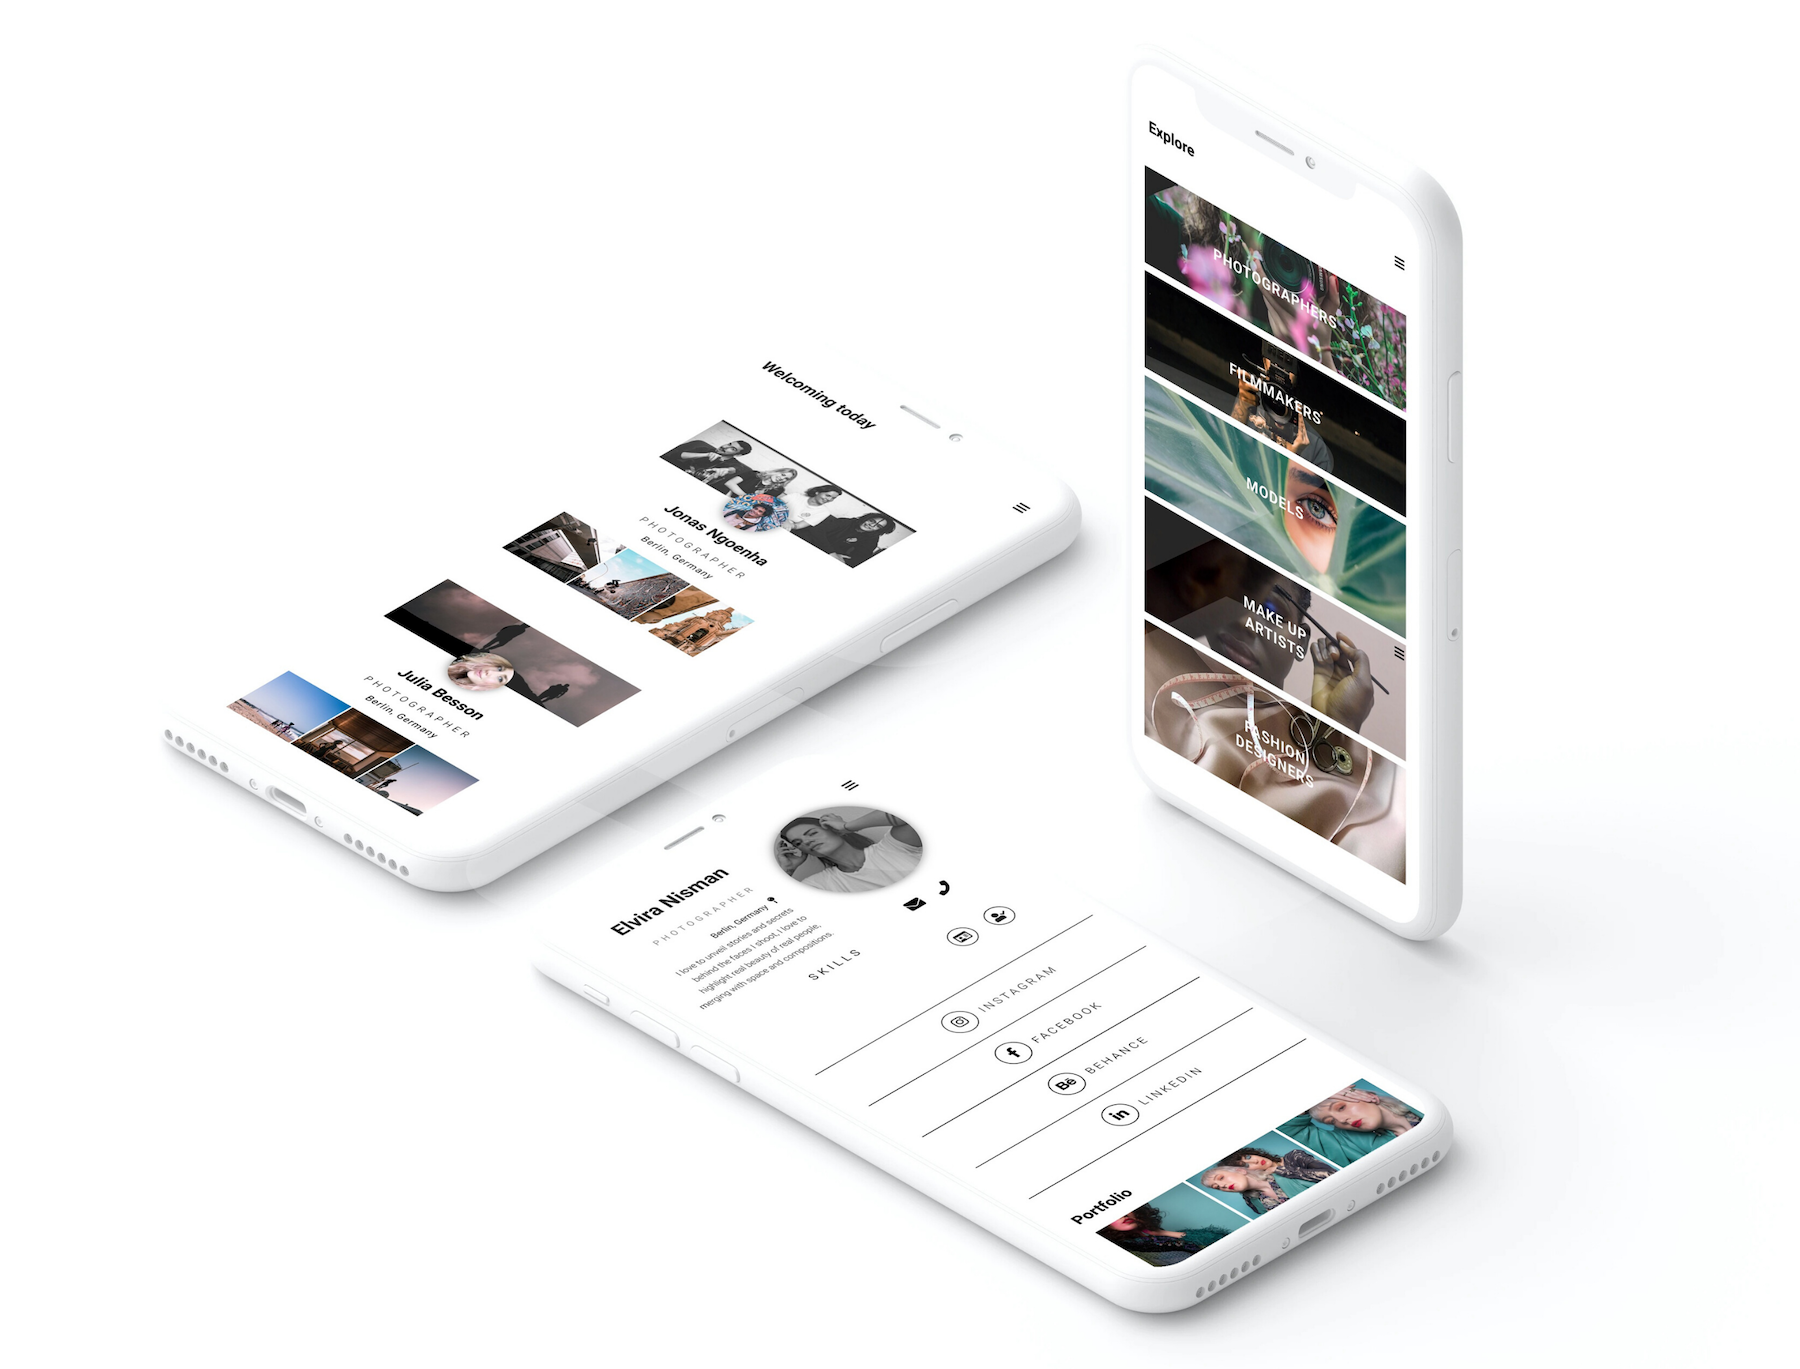 The Beazy gang is a collaborative app for creatives, allows you to display your portfolio with many links to your social media